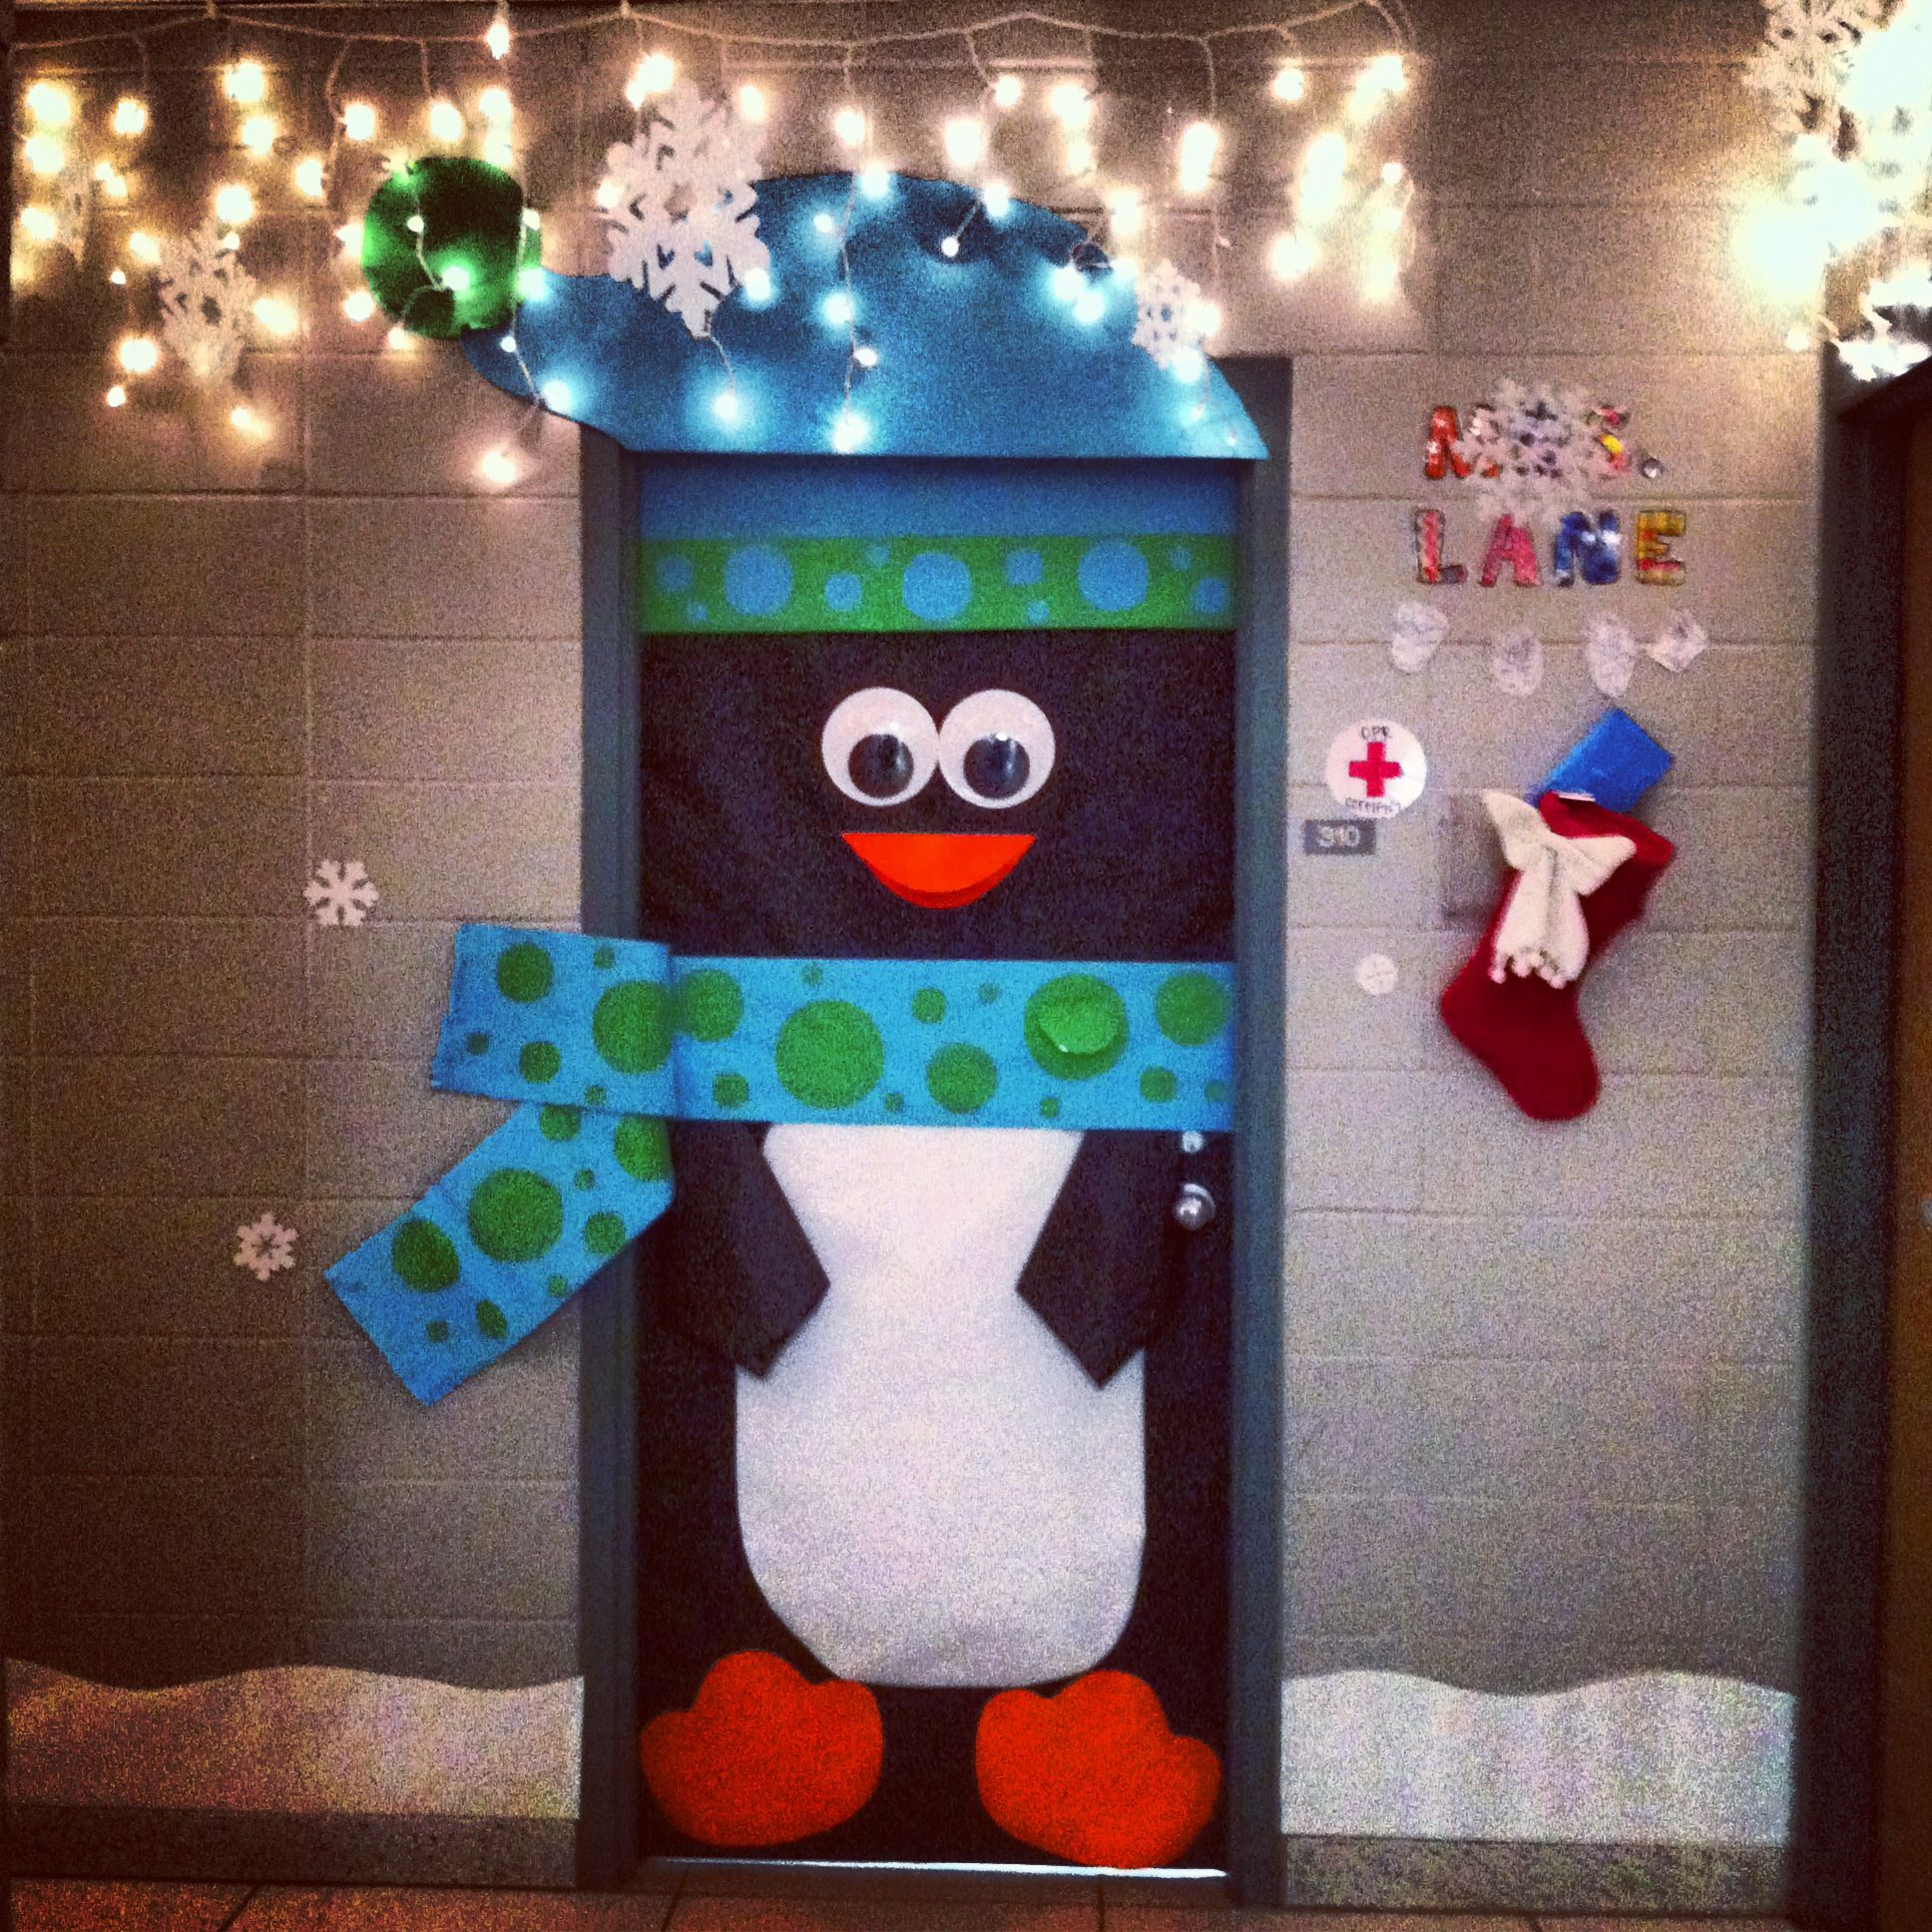 My Classroom Door :) HAPPY HOLIDAYS!